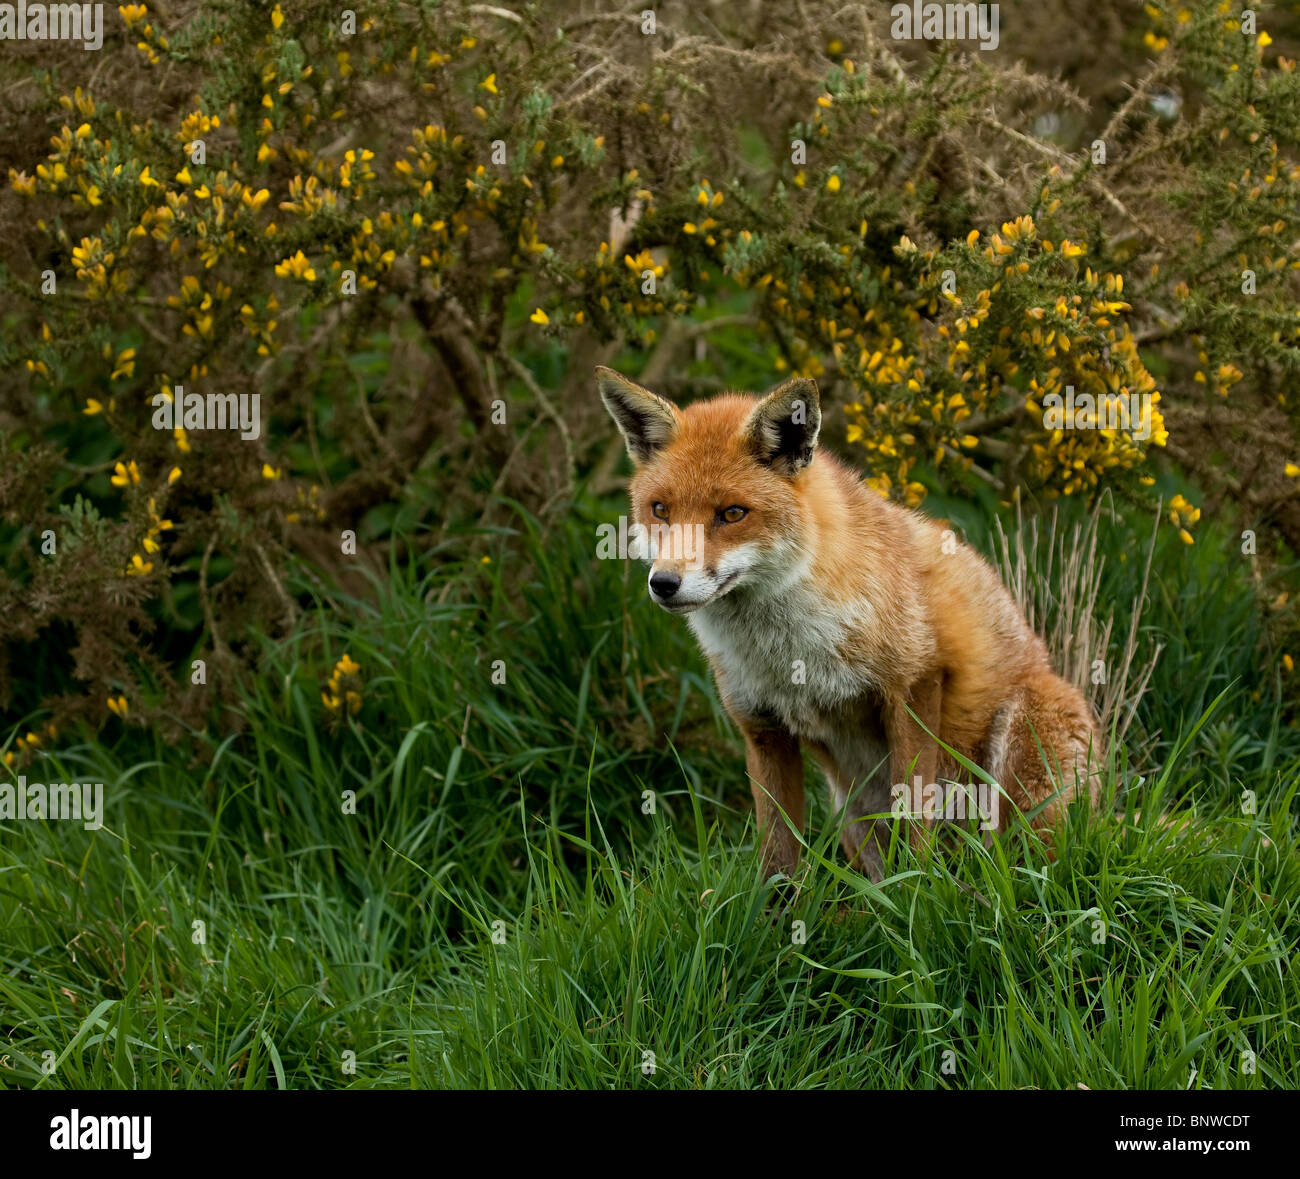 Royal George Hotel Birdlip Gloucestershire: Snooty Fox Stock Photos & Snooty Fox Stock Images